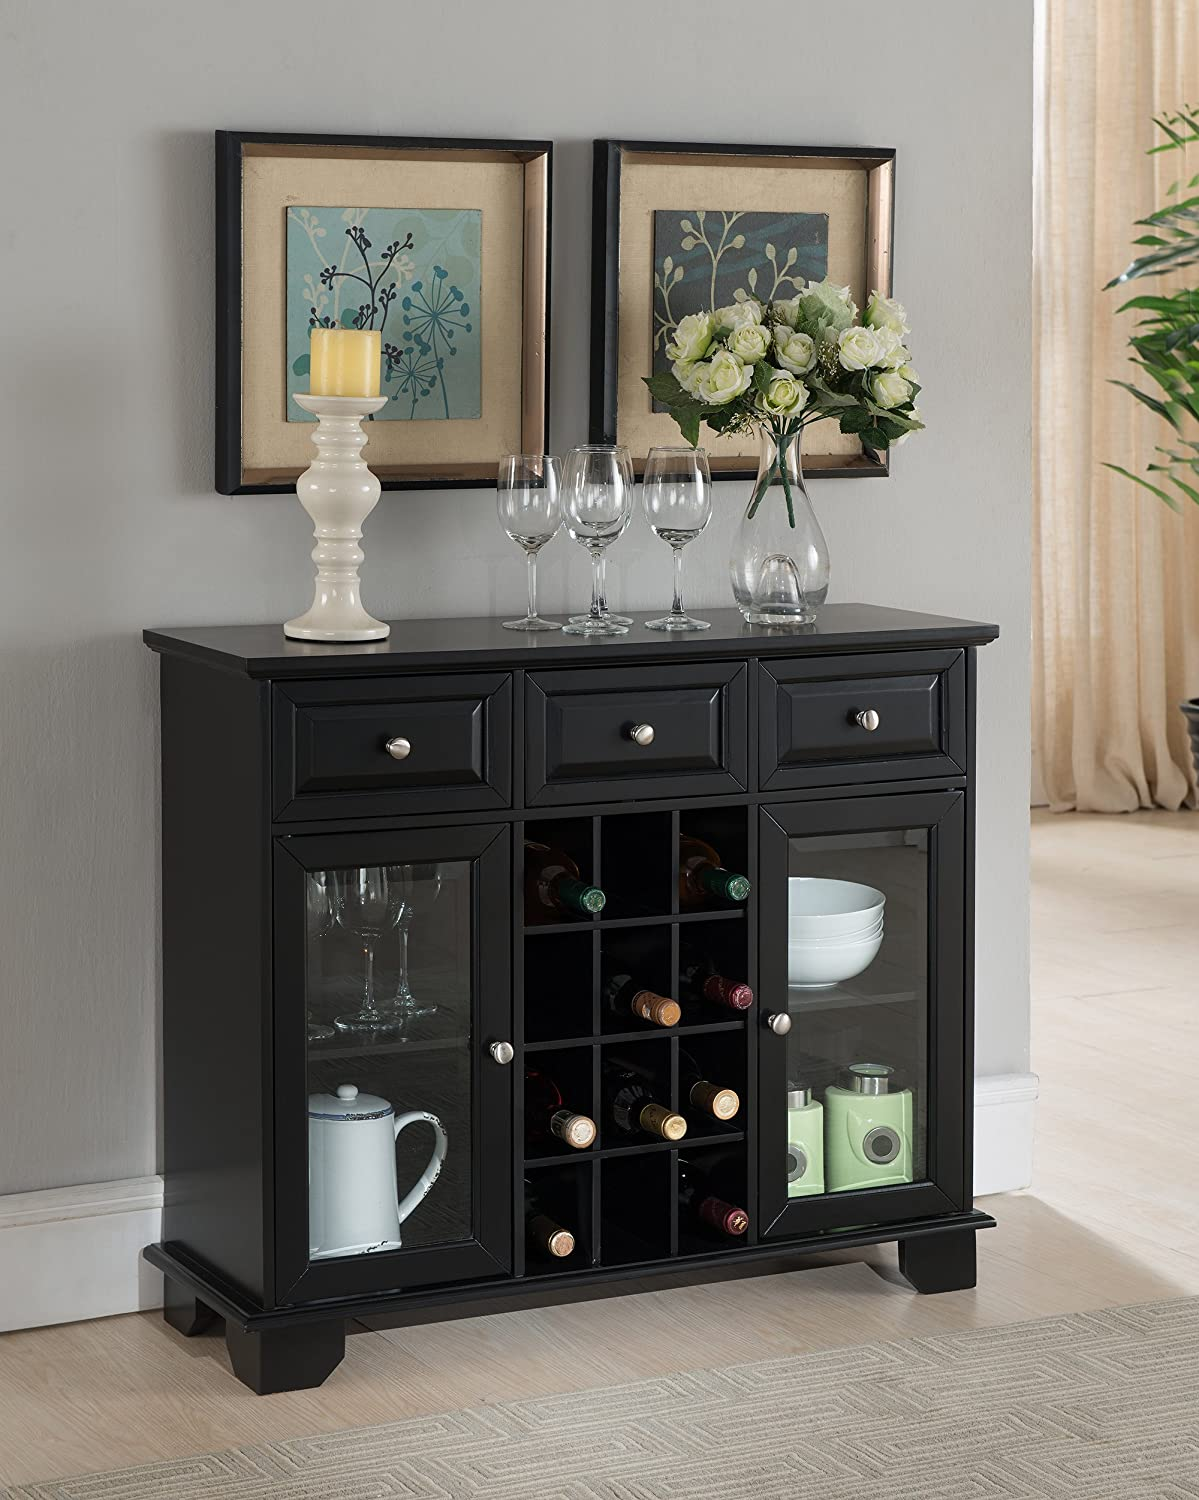 Amazon Kings Brand Furniture Buffet Server Sideboard Cabinet With Wine Storage Black Kitchen Dining